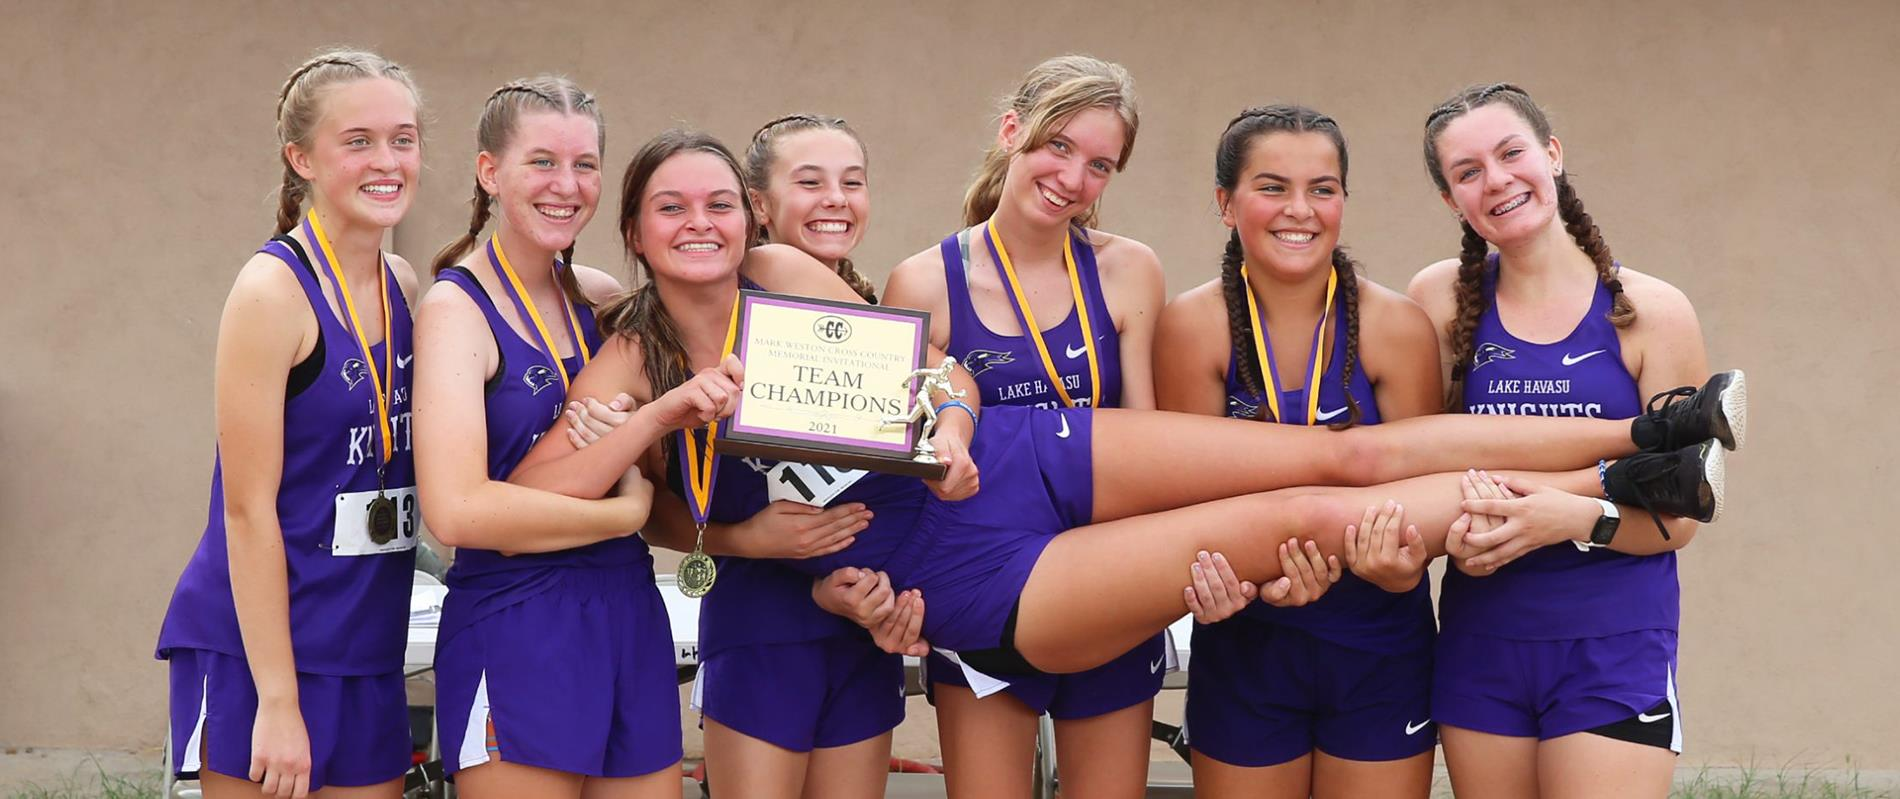 Girls Track team with team trophy